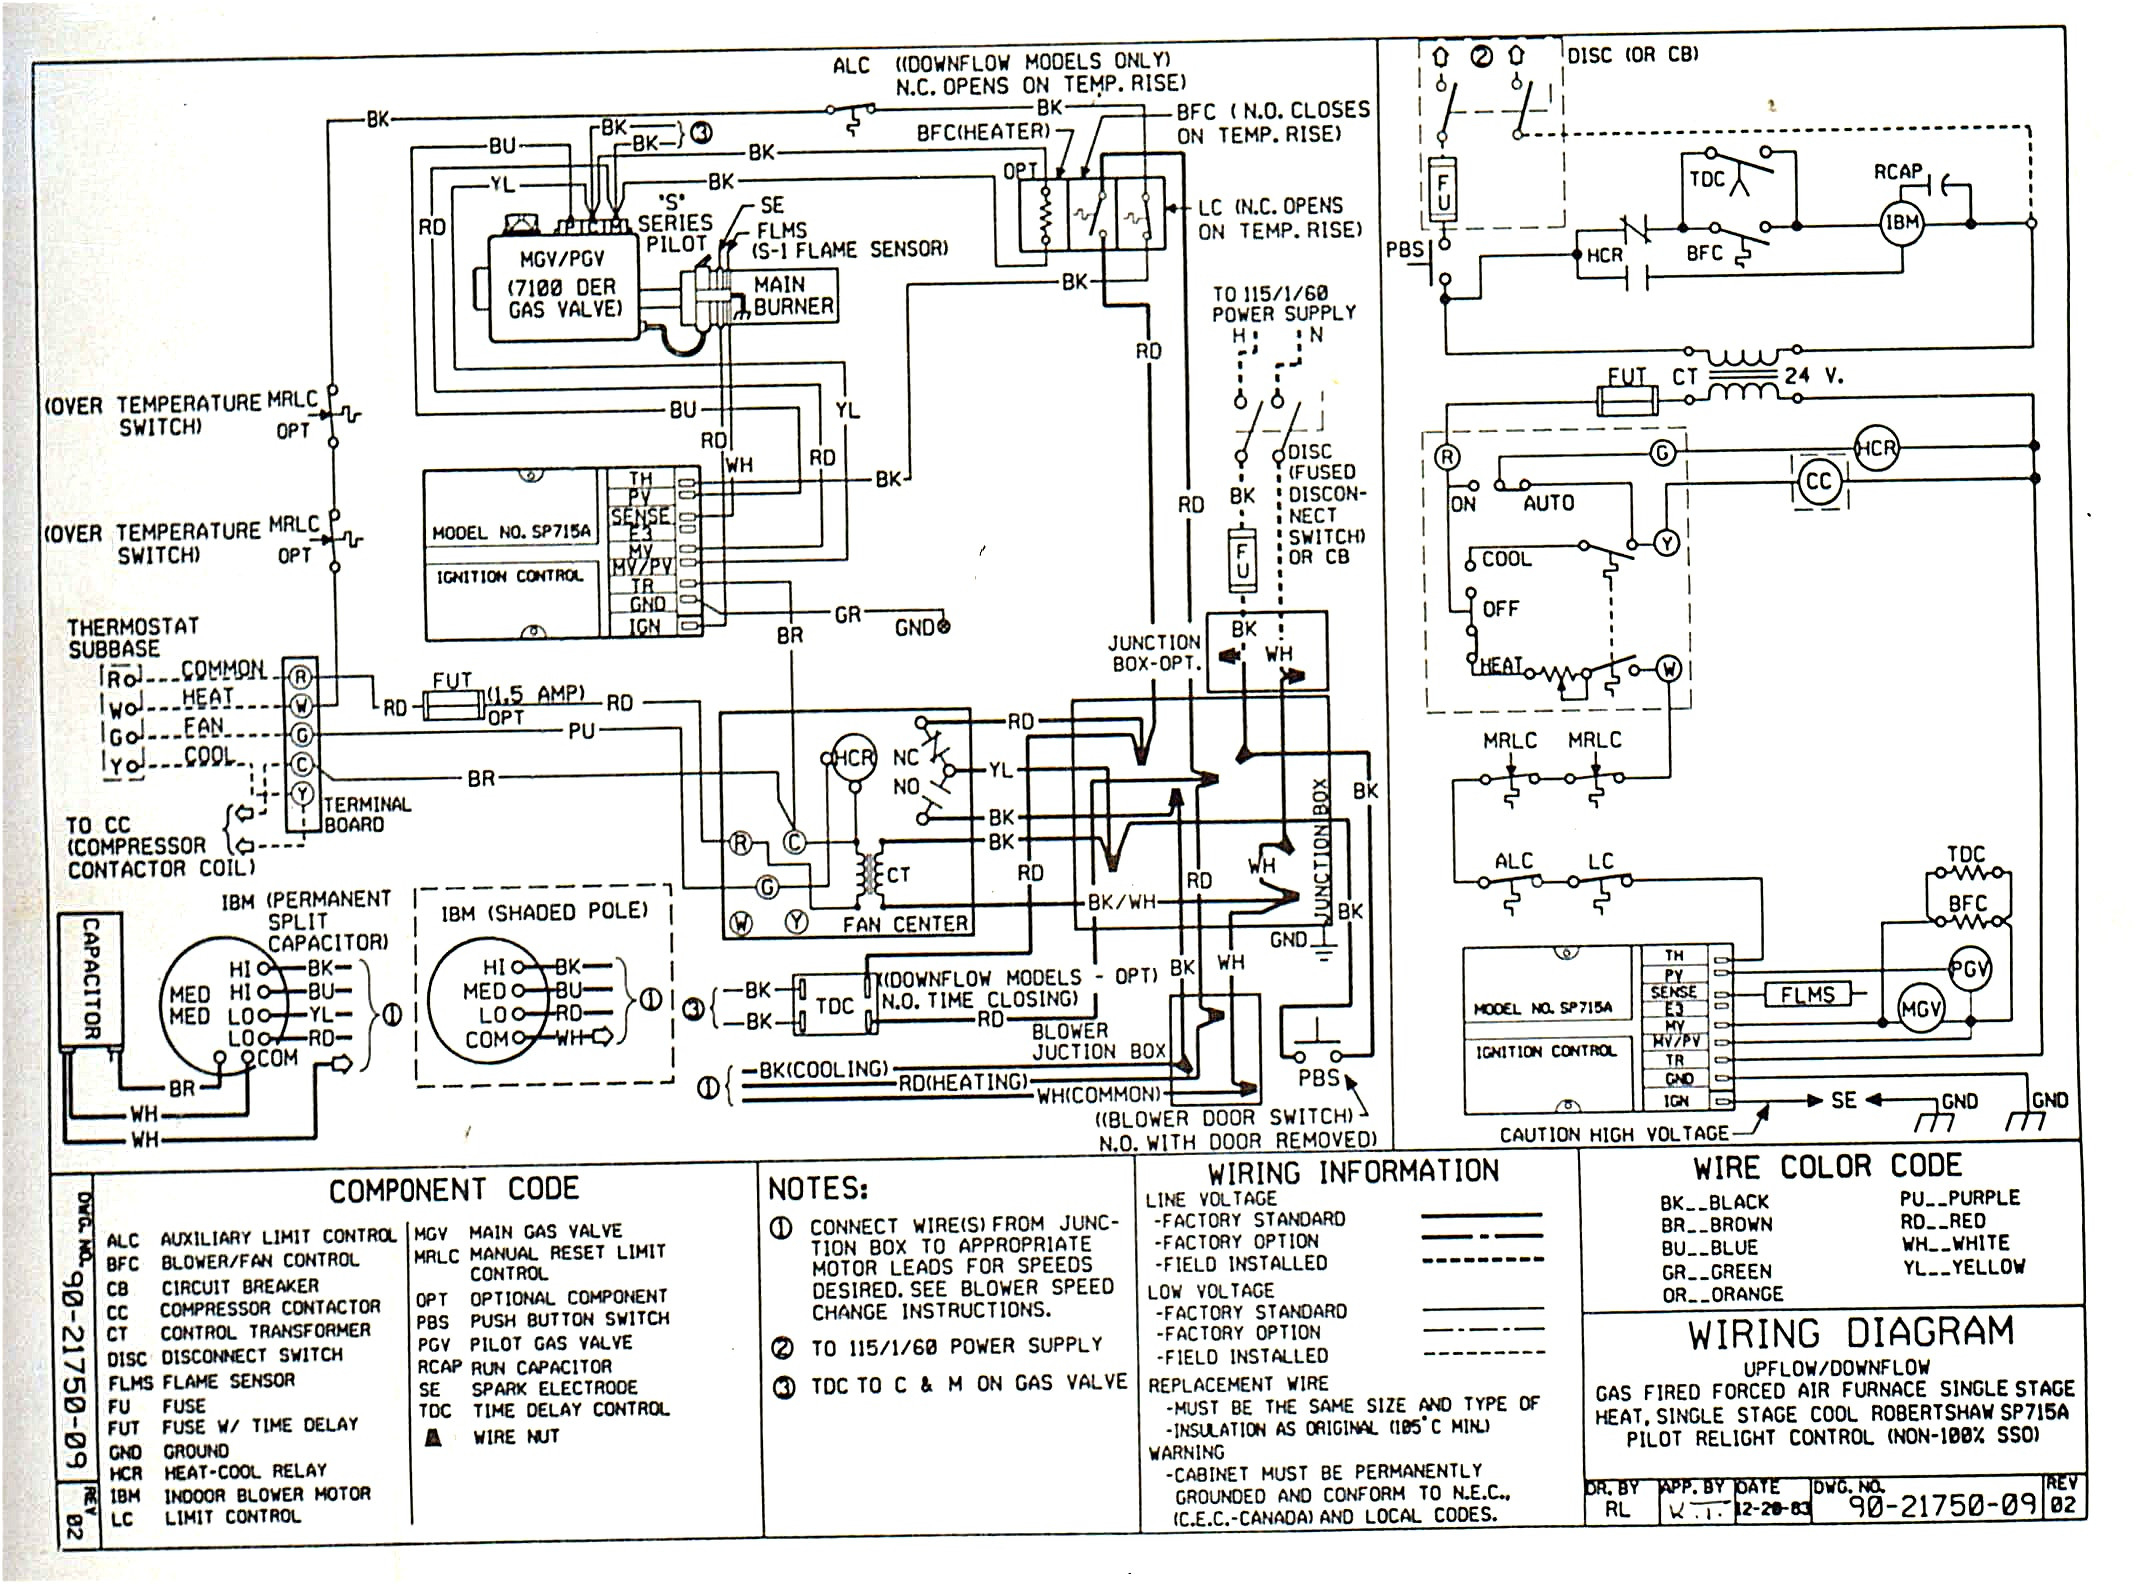 hight resolution of vermeer wiring diagram auto electrical wiring diagram icm7216c28pindip controlcircuit circuit diagram seekiccom